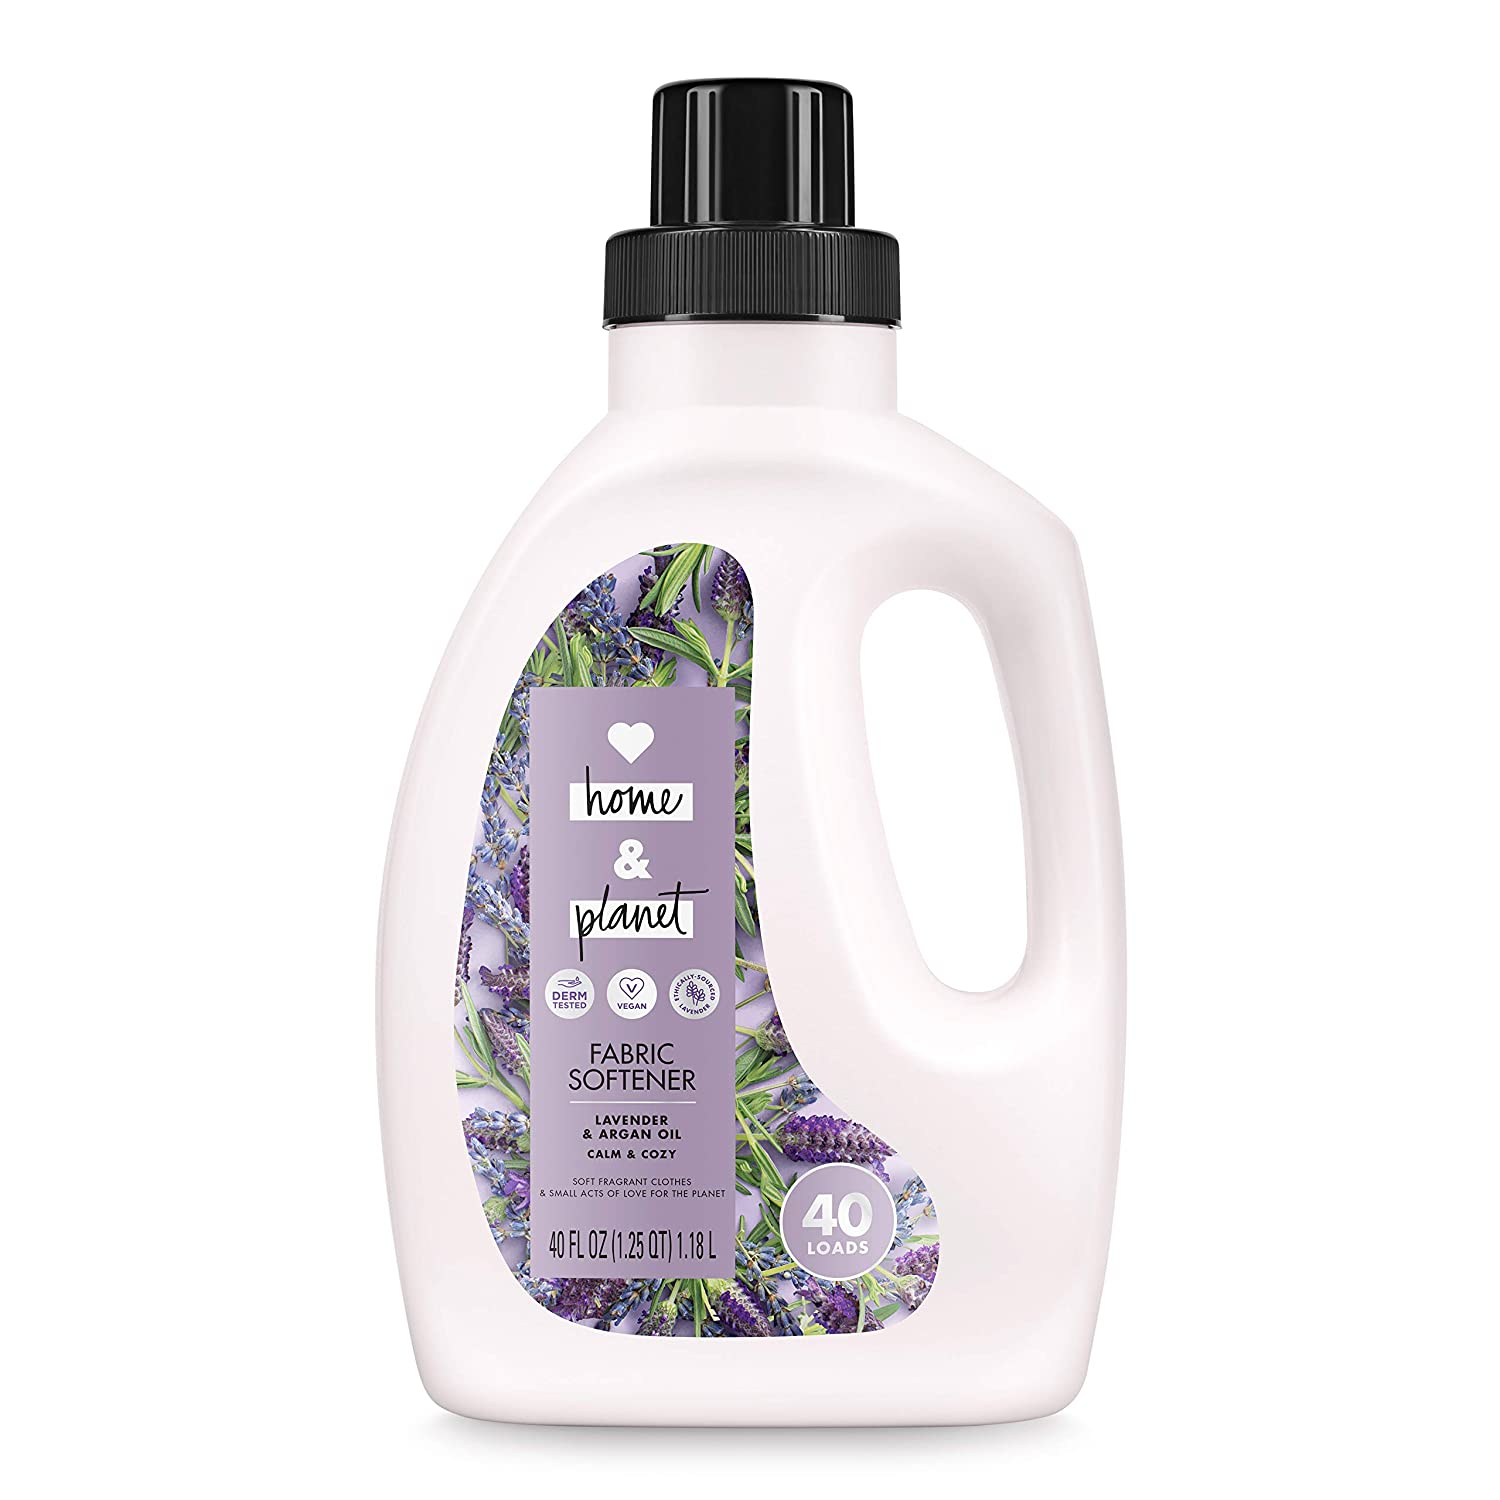 Love Home and Planet Fabric Softener Lavender & Argan Oil, 40 oz